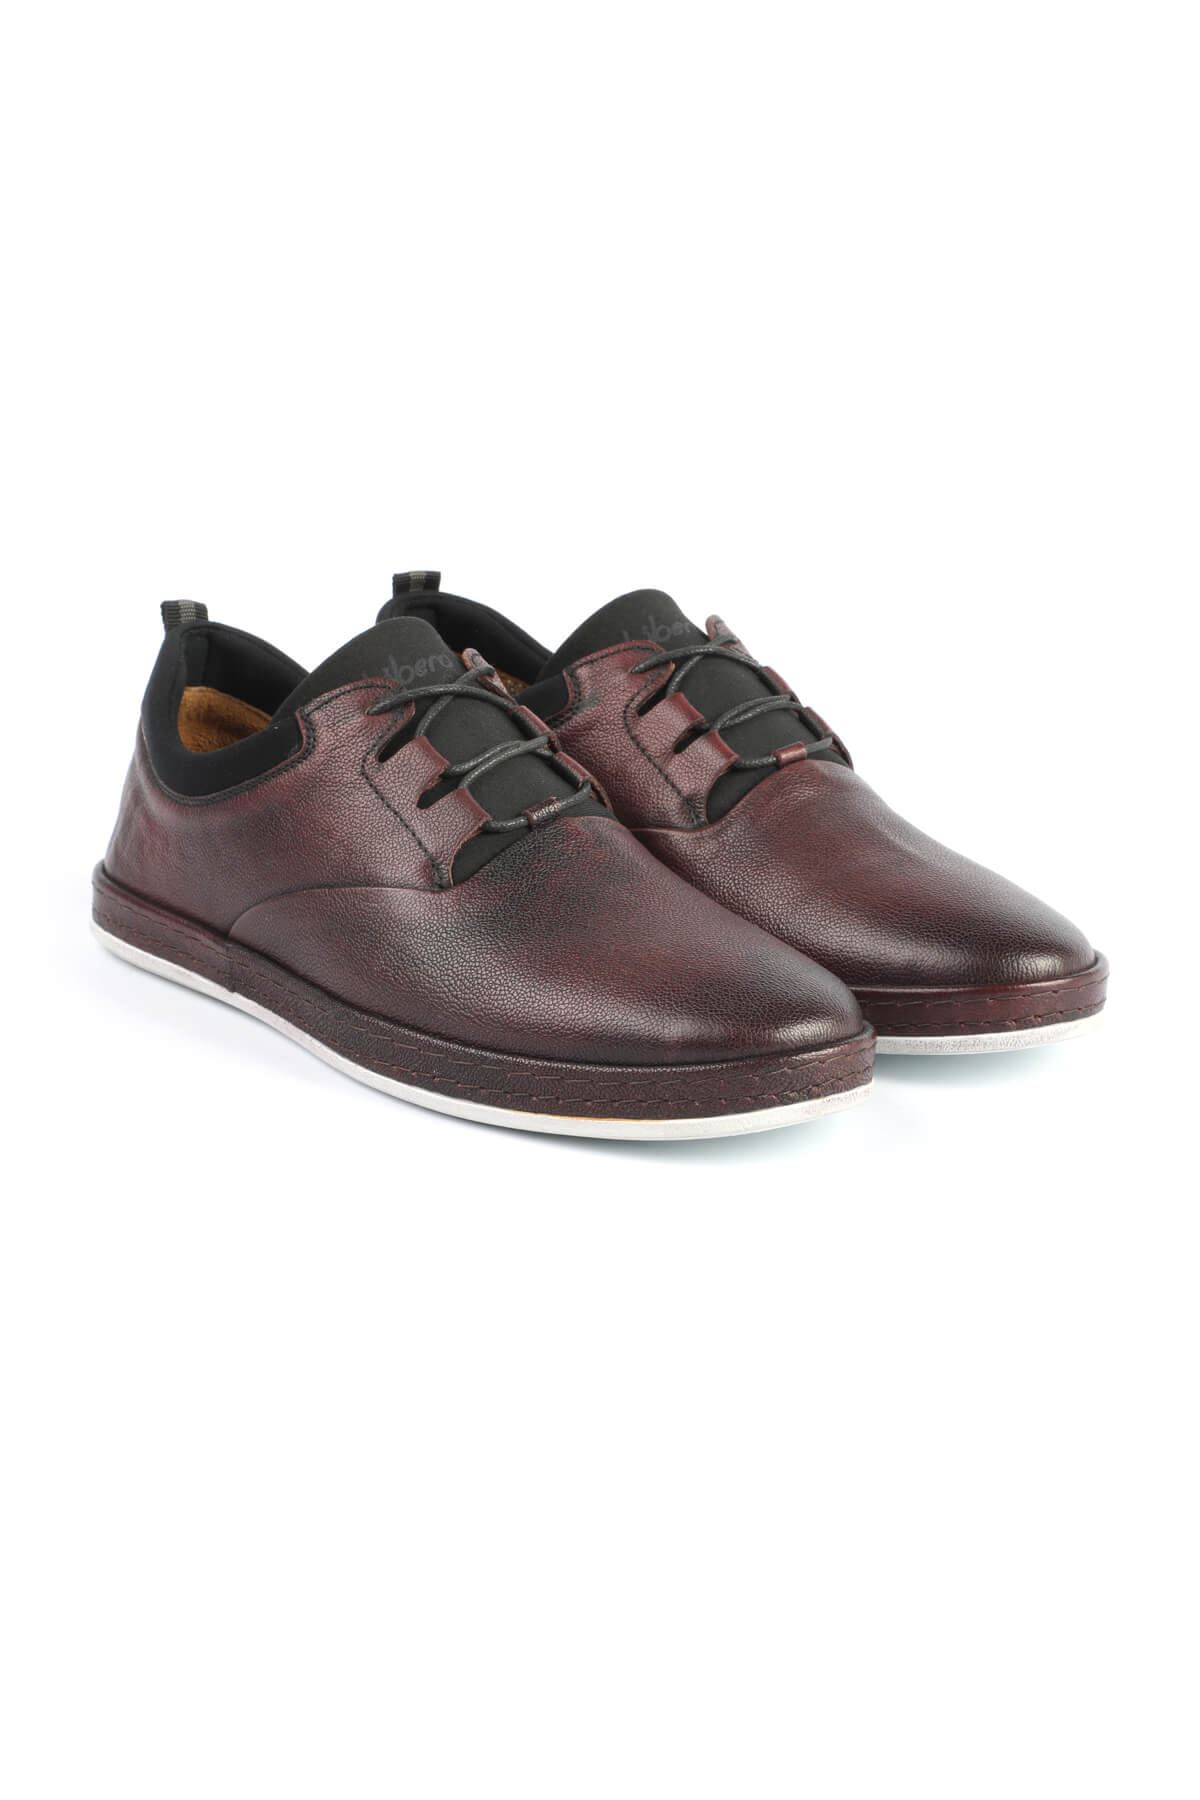 Libero 2979 Brown Casual Shoes